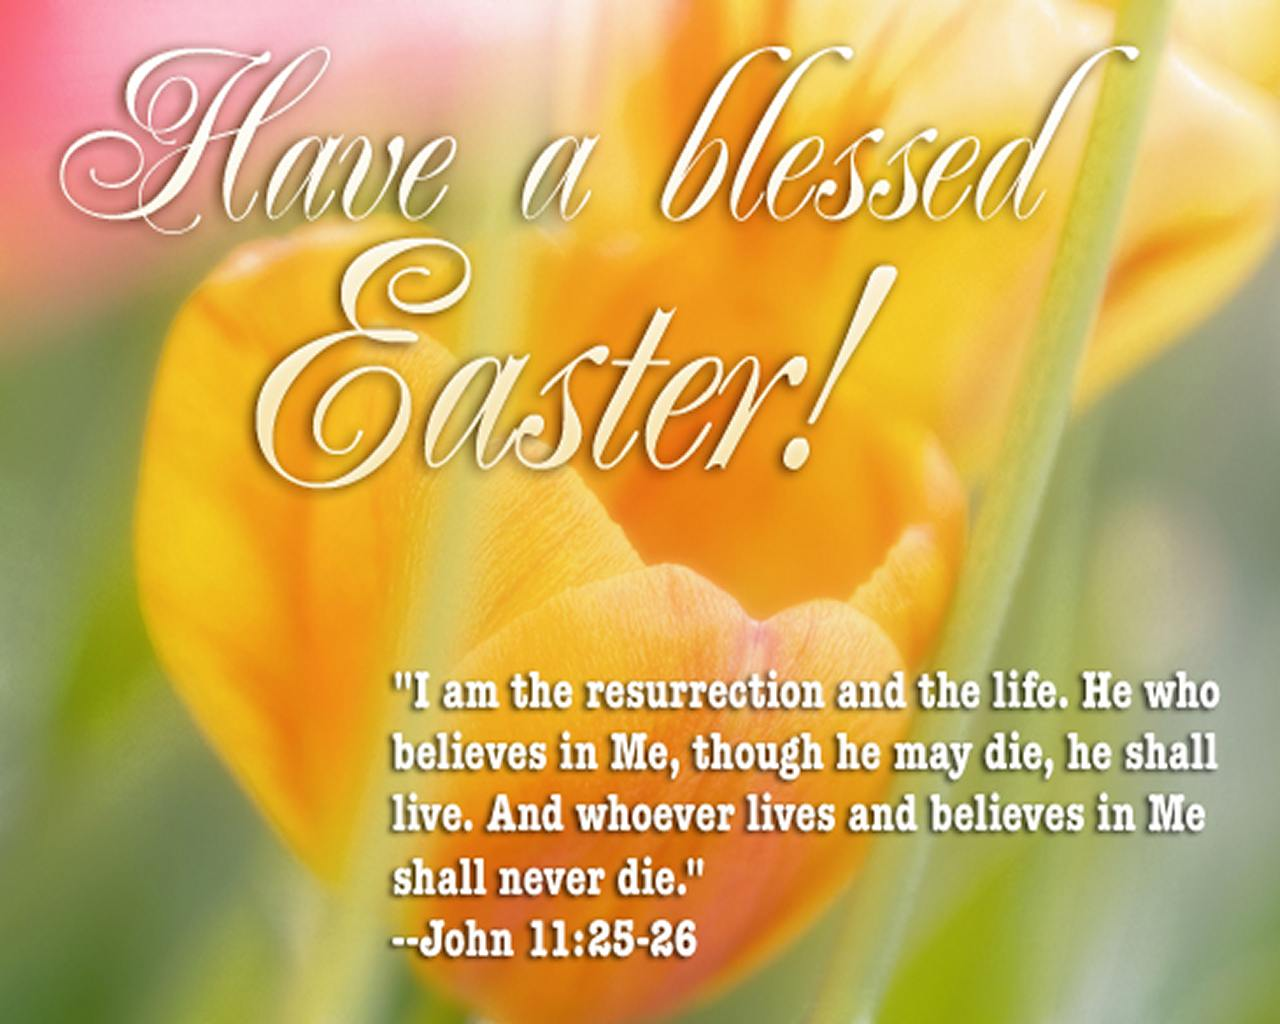 Easter Quotes: * Nubia_group Inspiration *: Sharing Nice Quotes From The